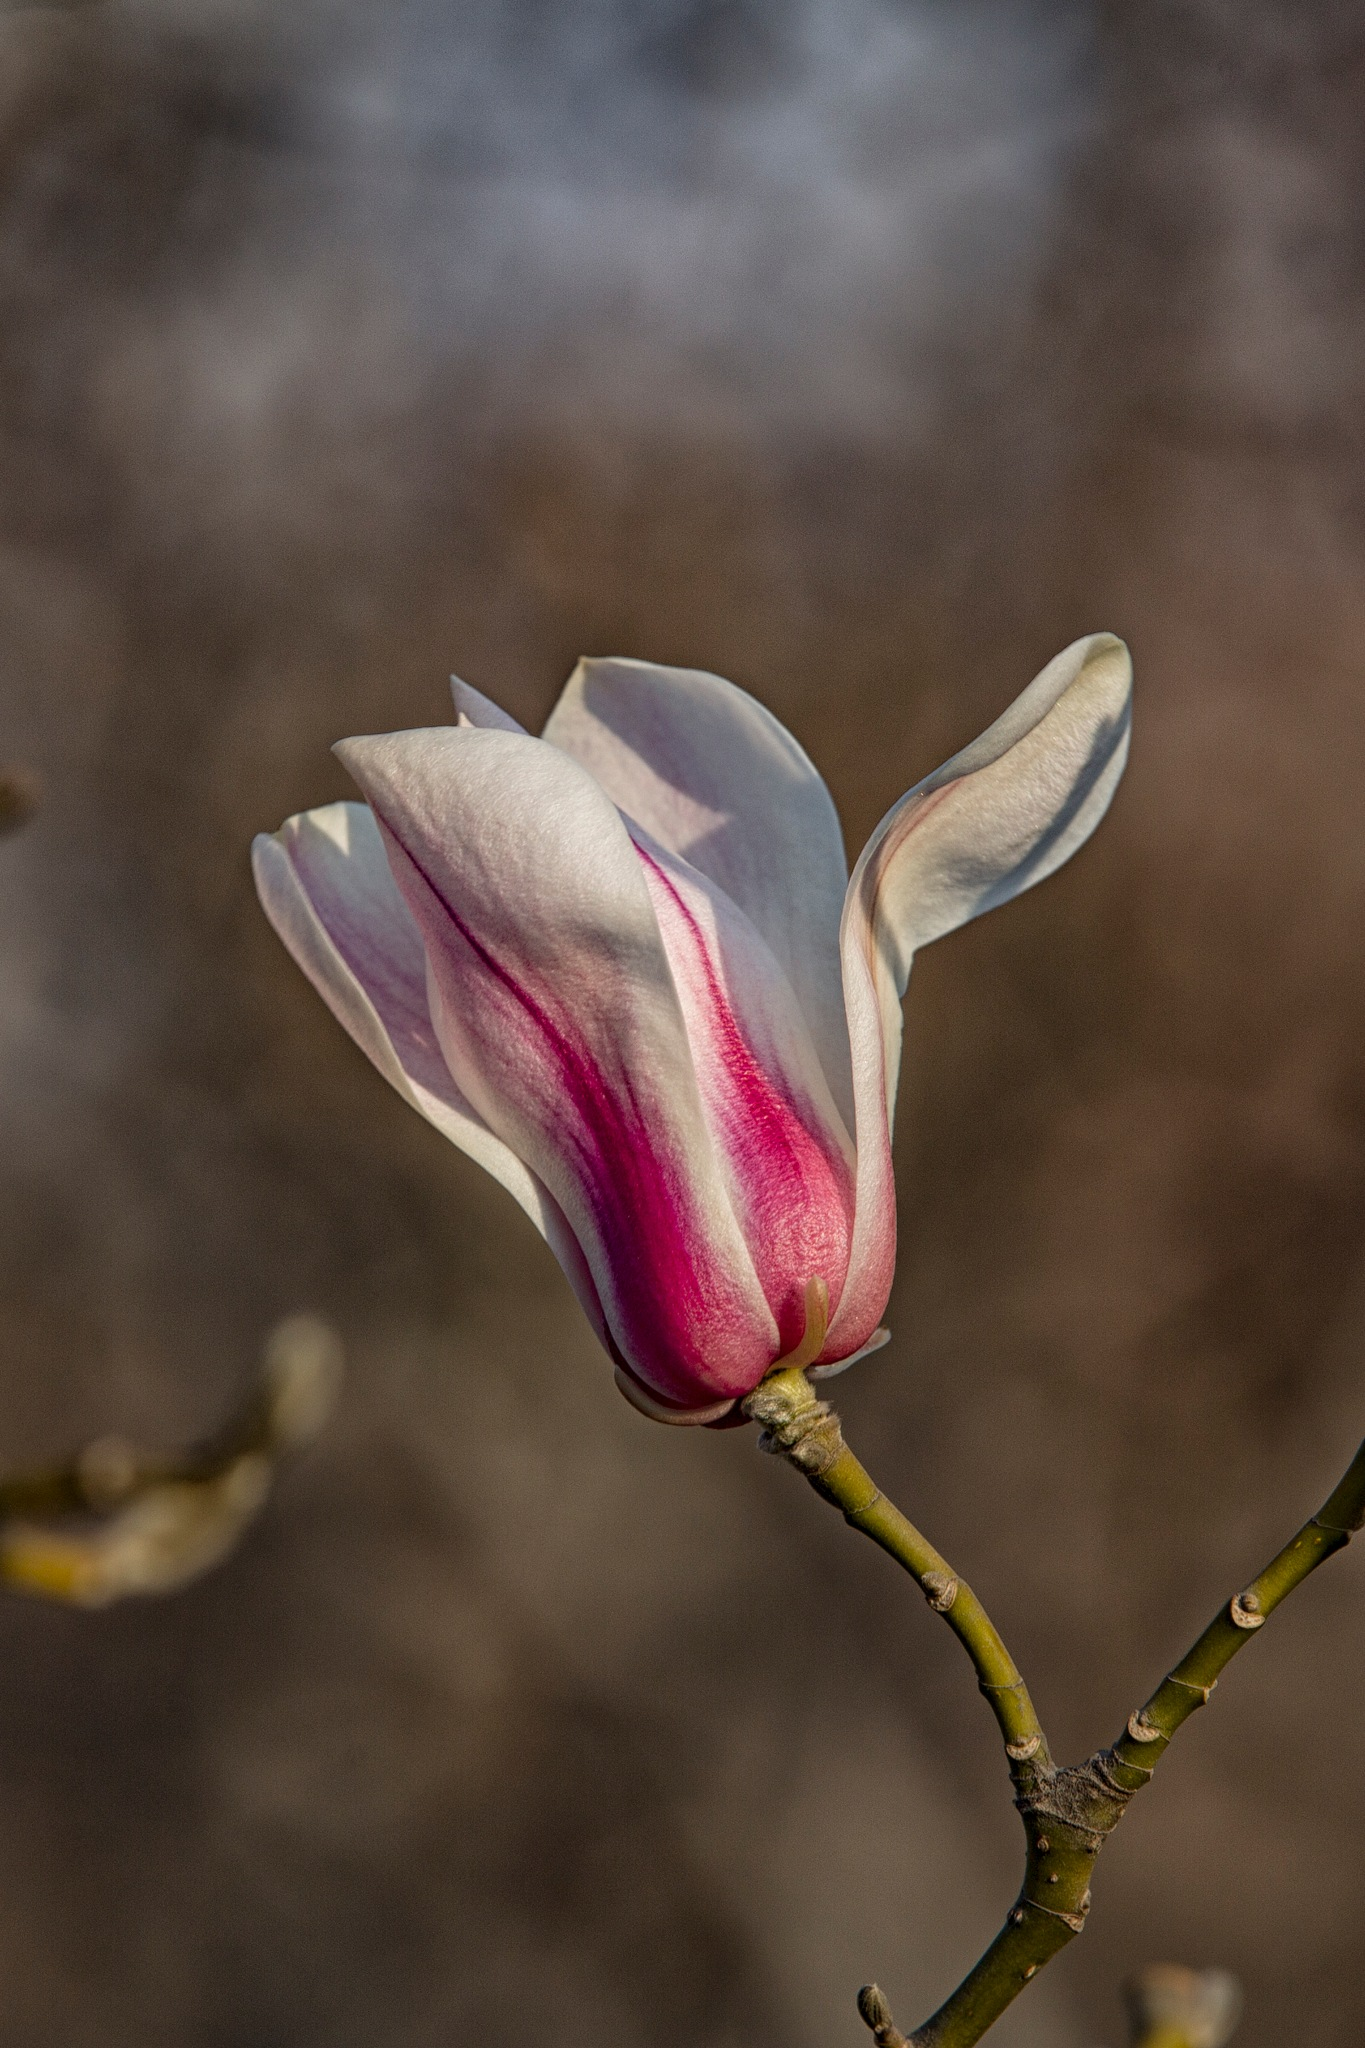 Magnolia by James zhao